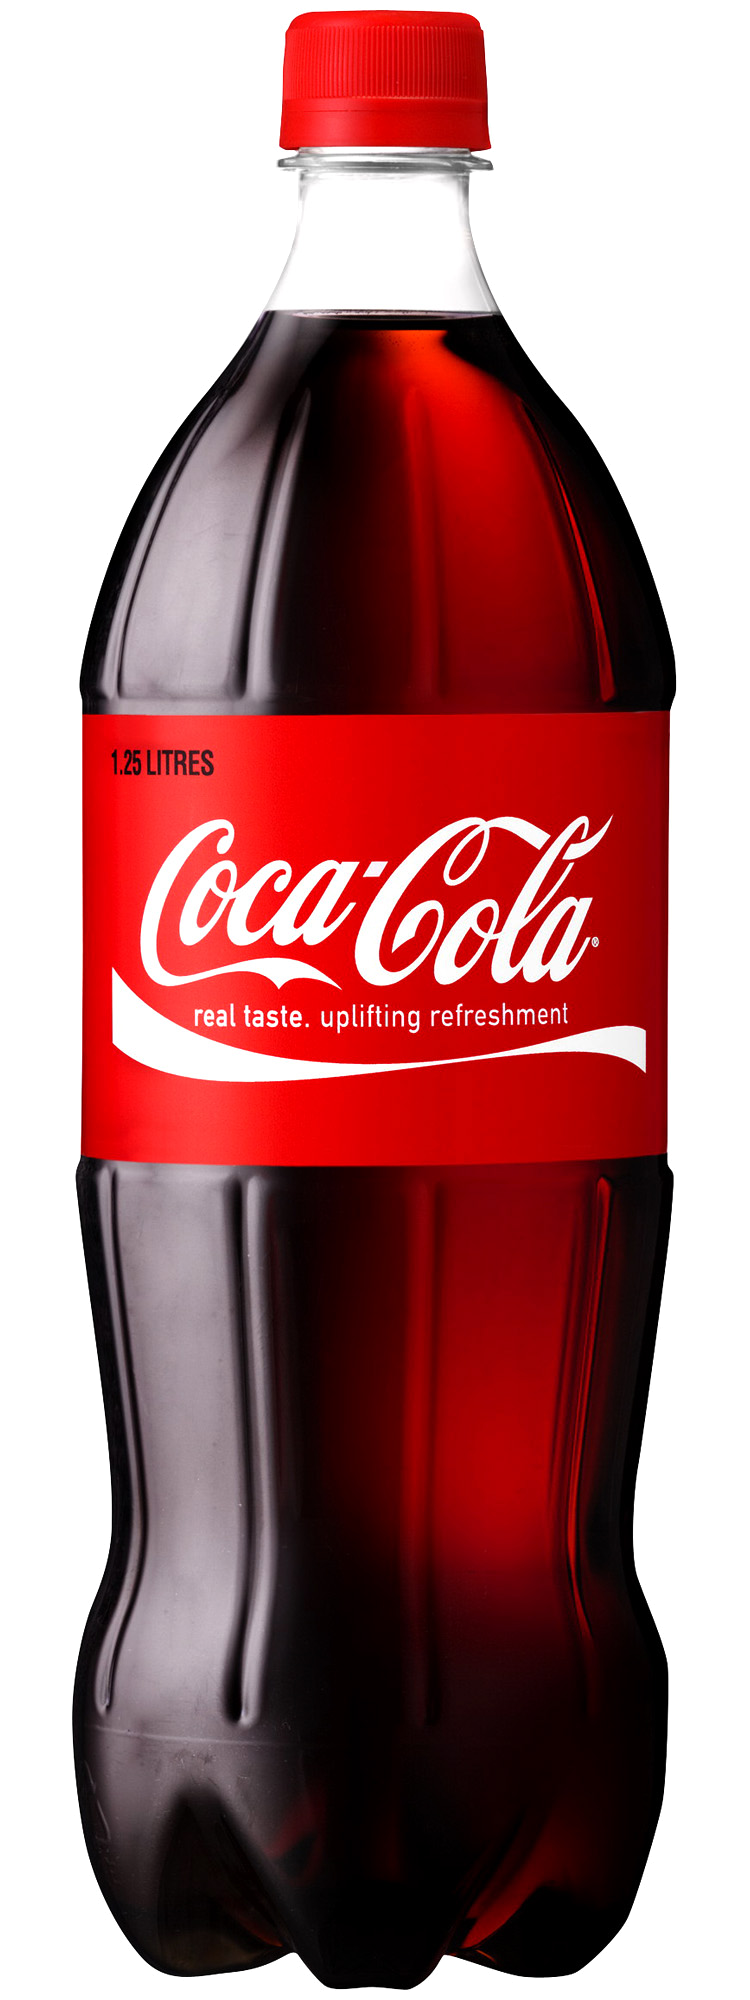 cocacola_PNG21